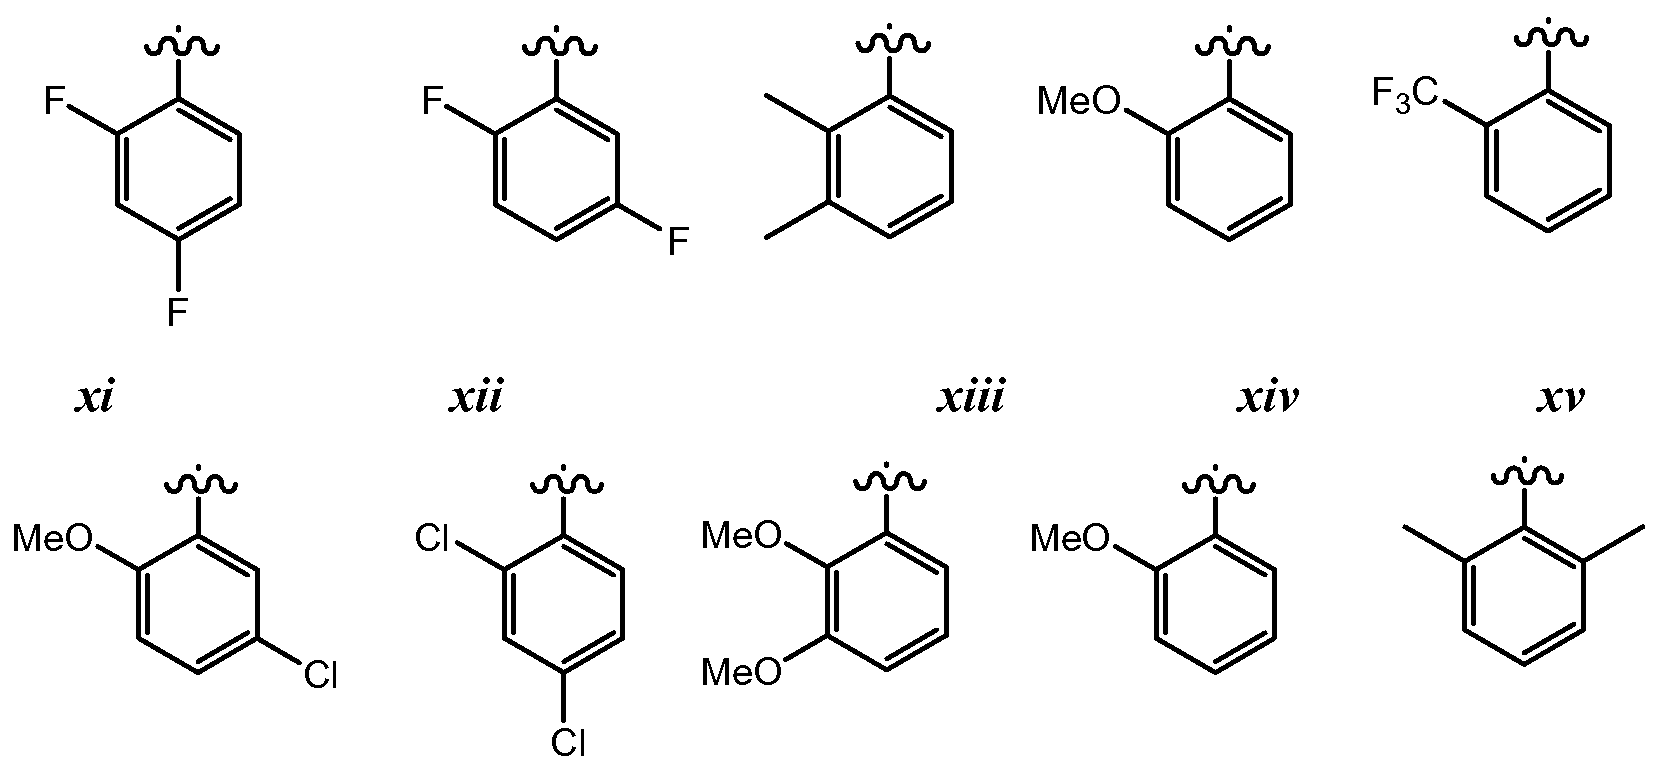 WO2008052078A2 - Benzoxathiine and benzoxathiole derivatives and